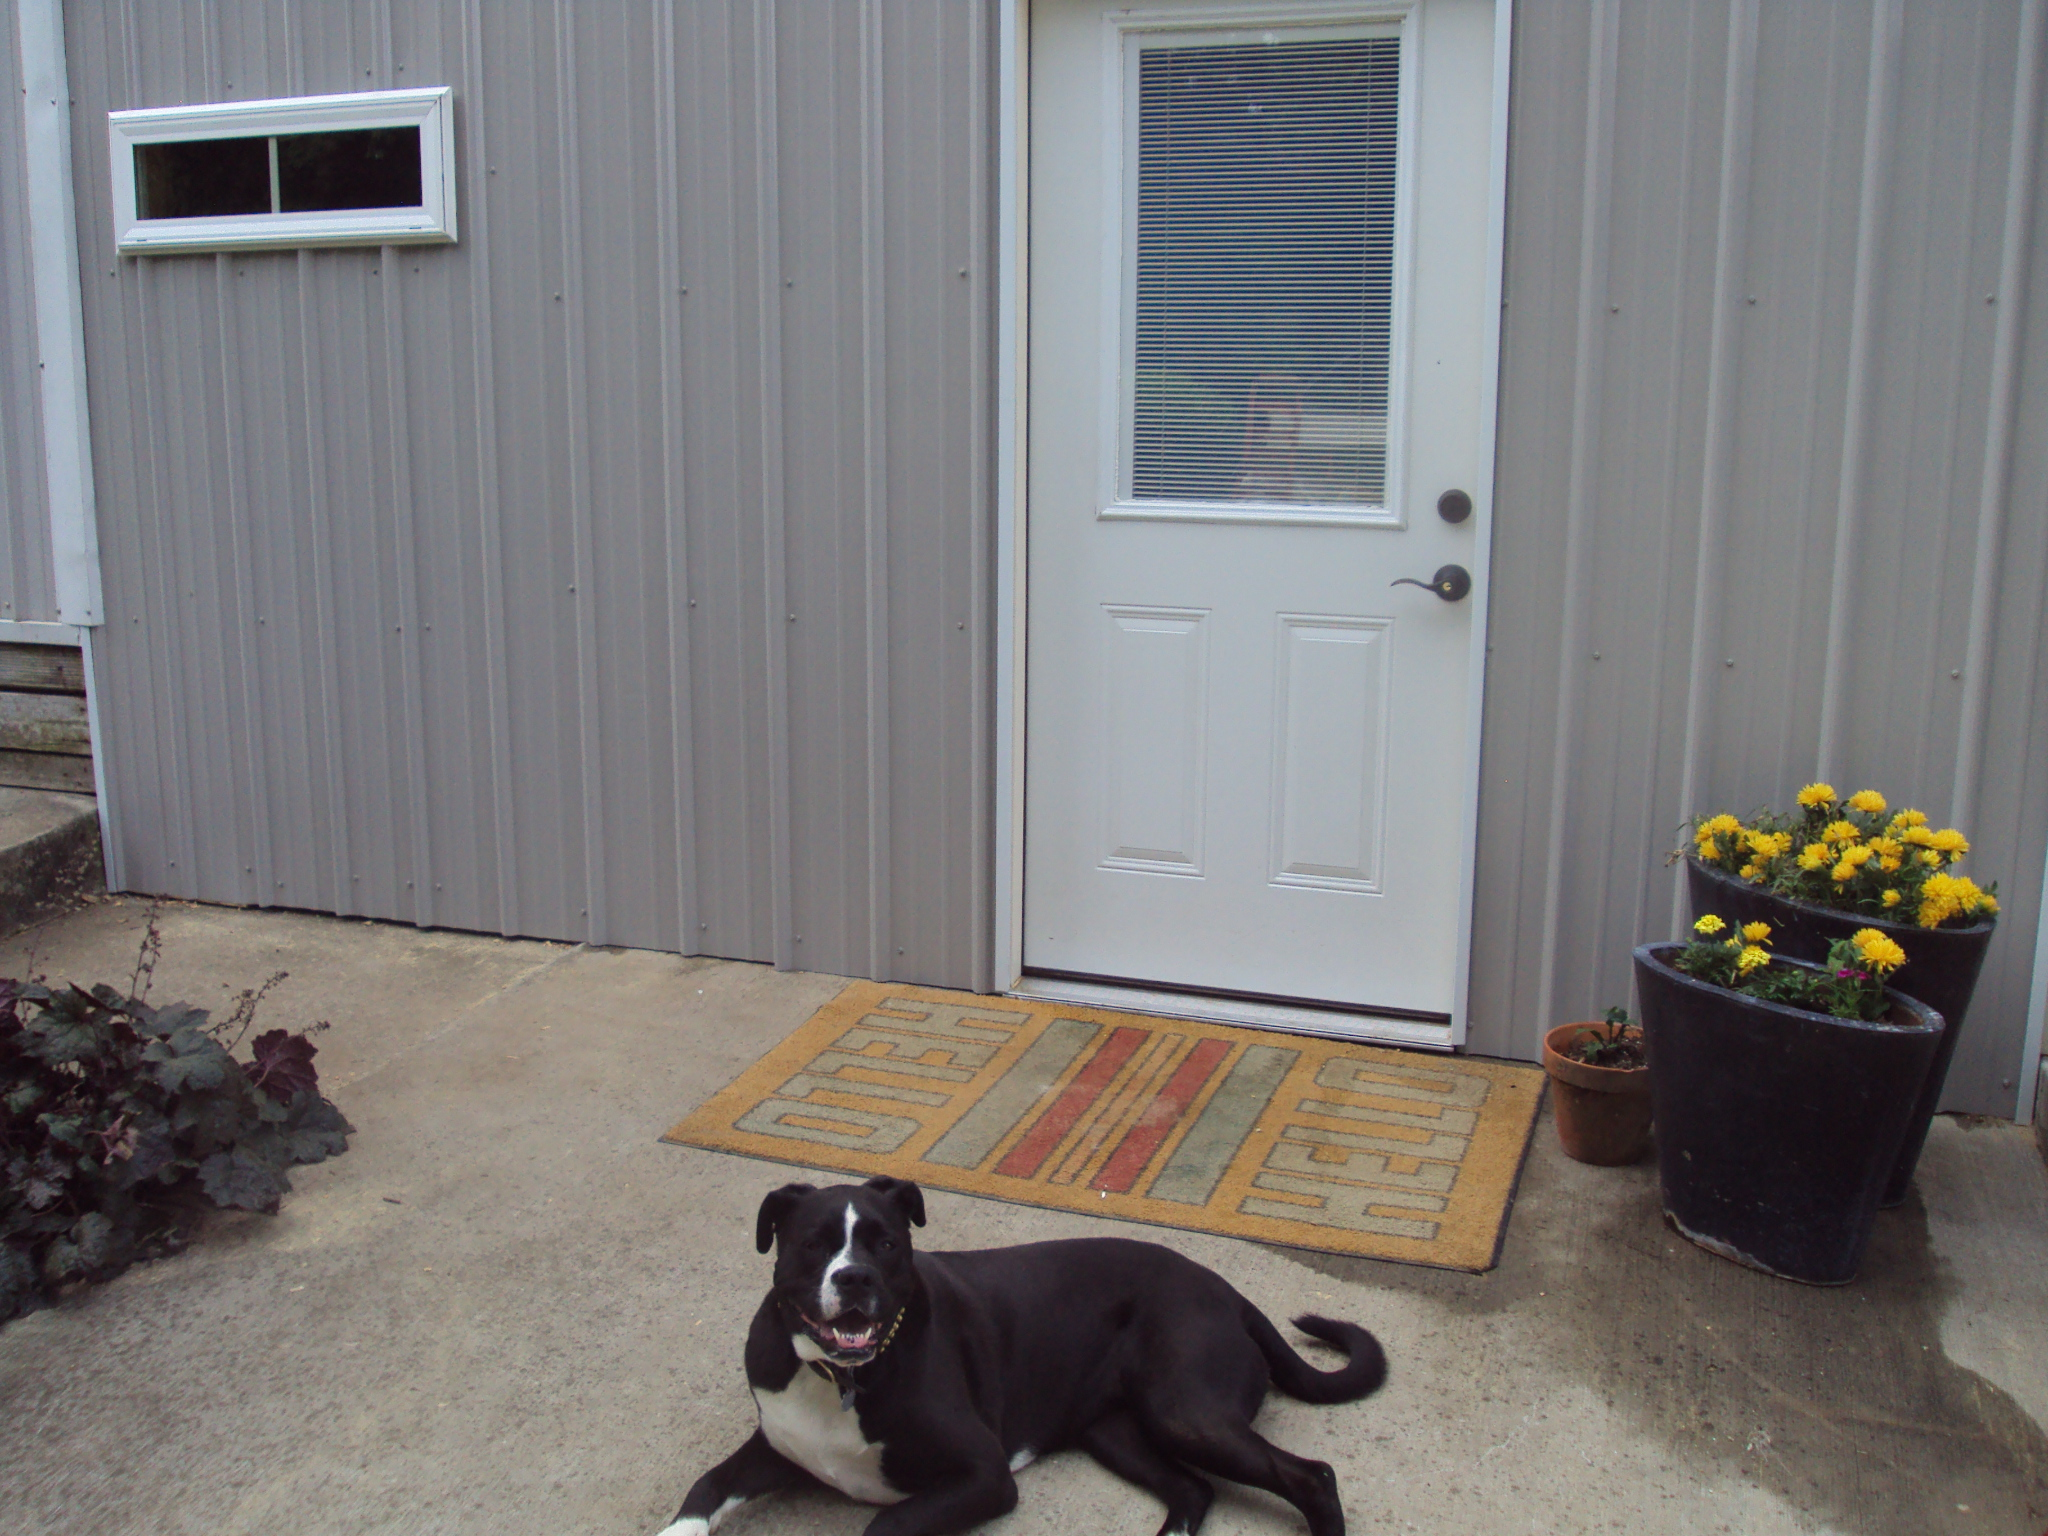 Beech Grove Stable and Kennels image 5